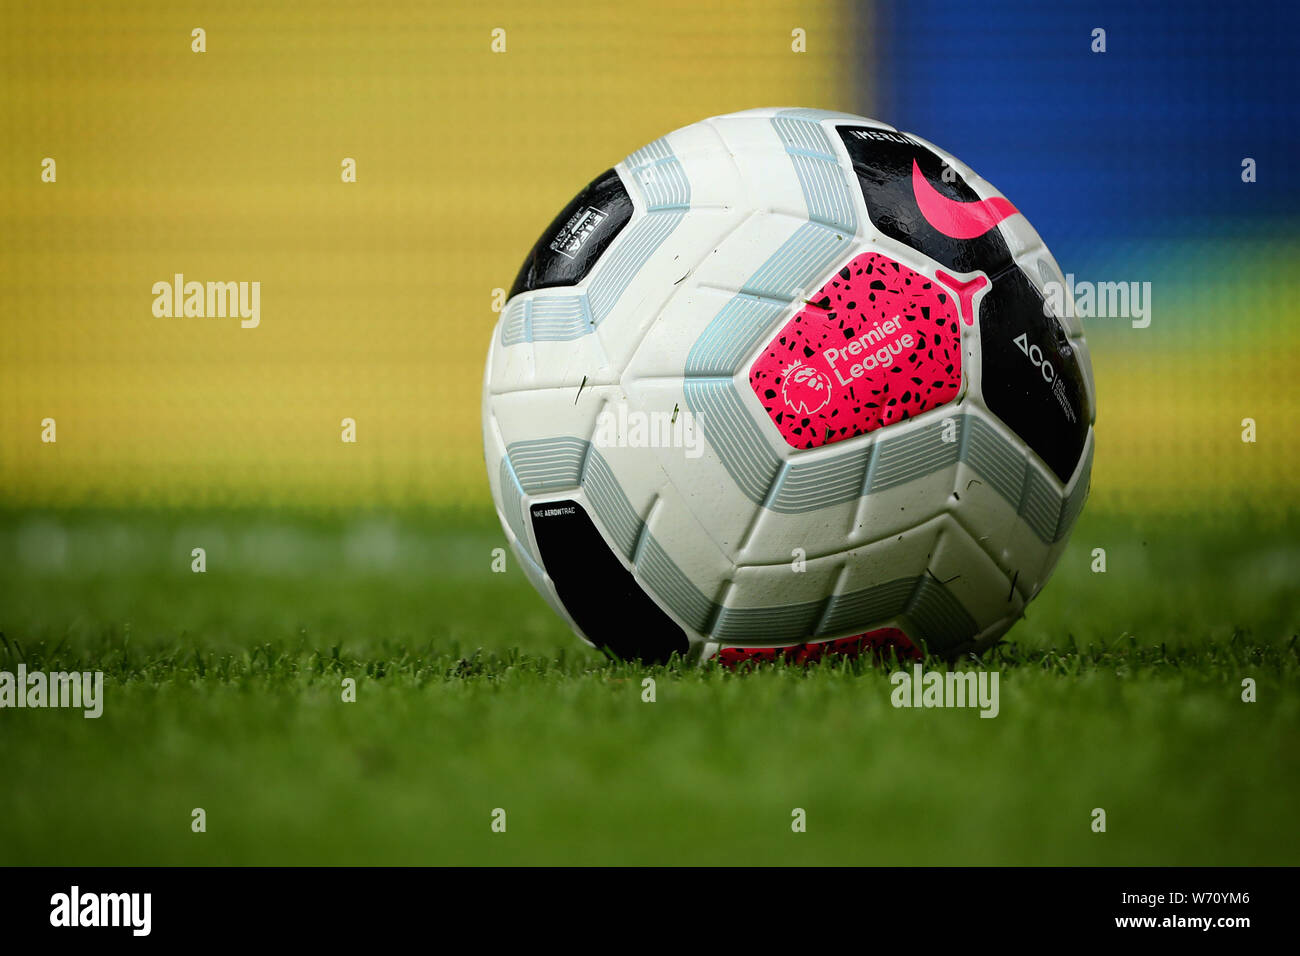 Nike Merlin Ball High Resolution Stock Photography And Images Alamy